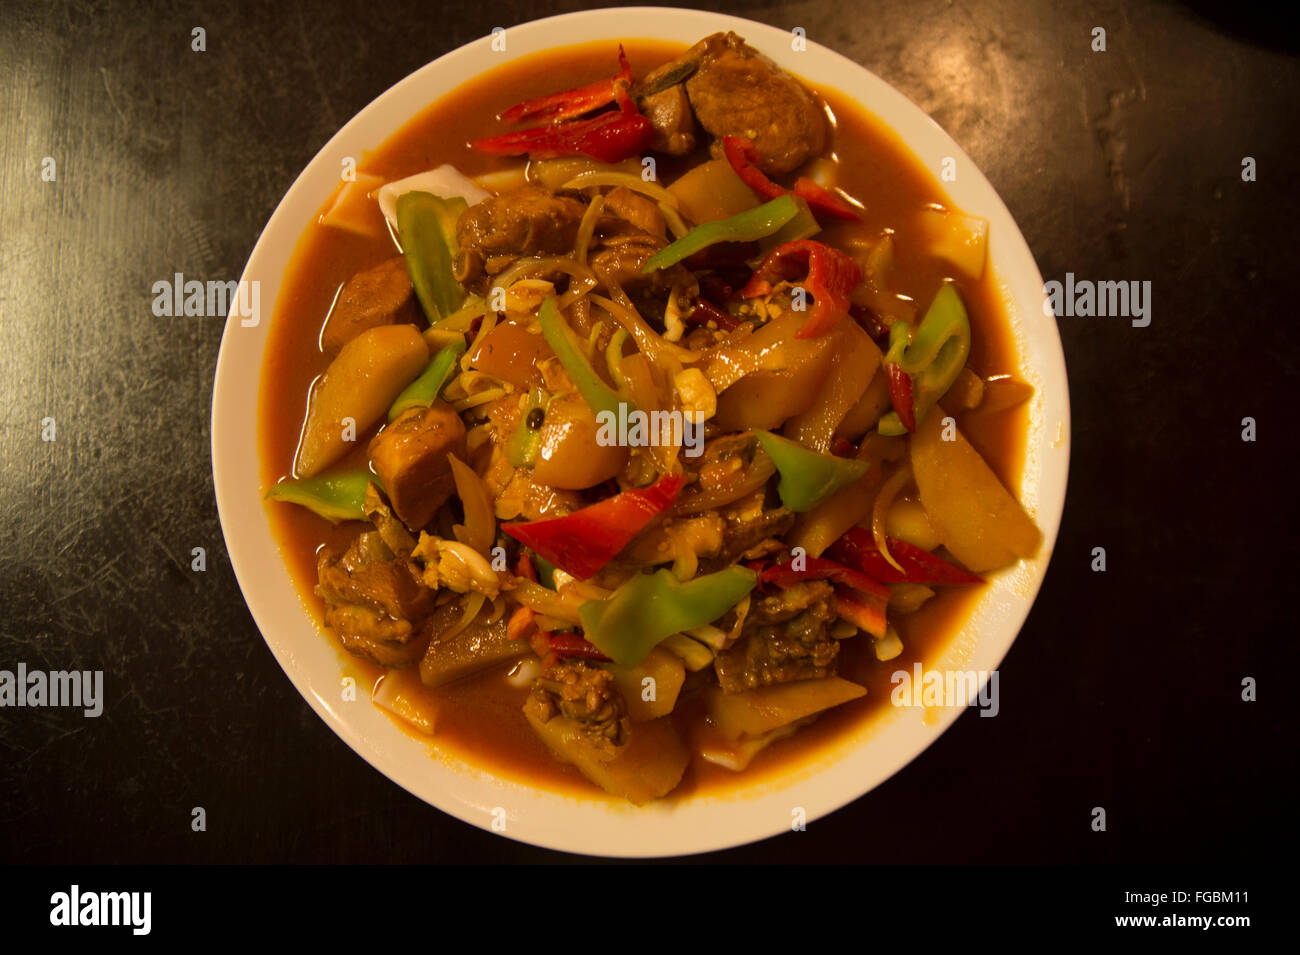 Uyghur cuisine: handmade noodles fried with chicken and vegetables - Stock Image